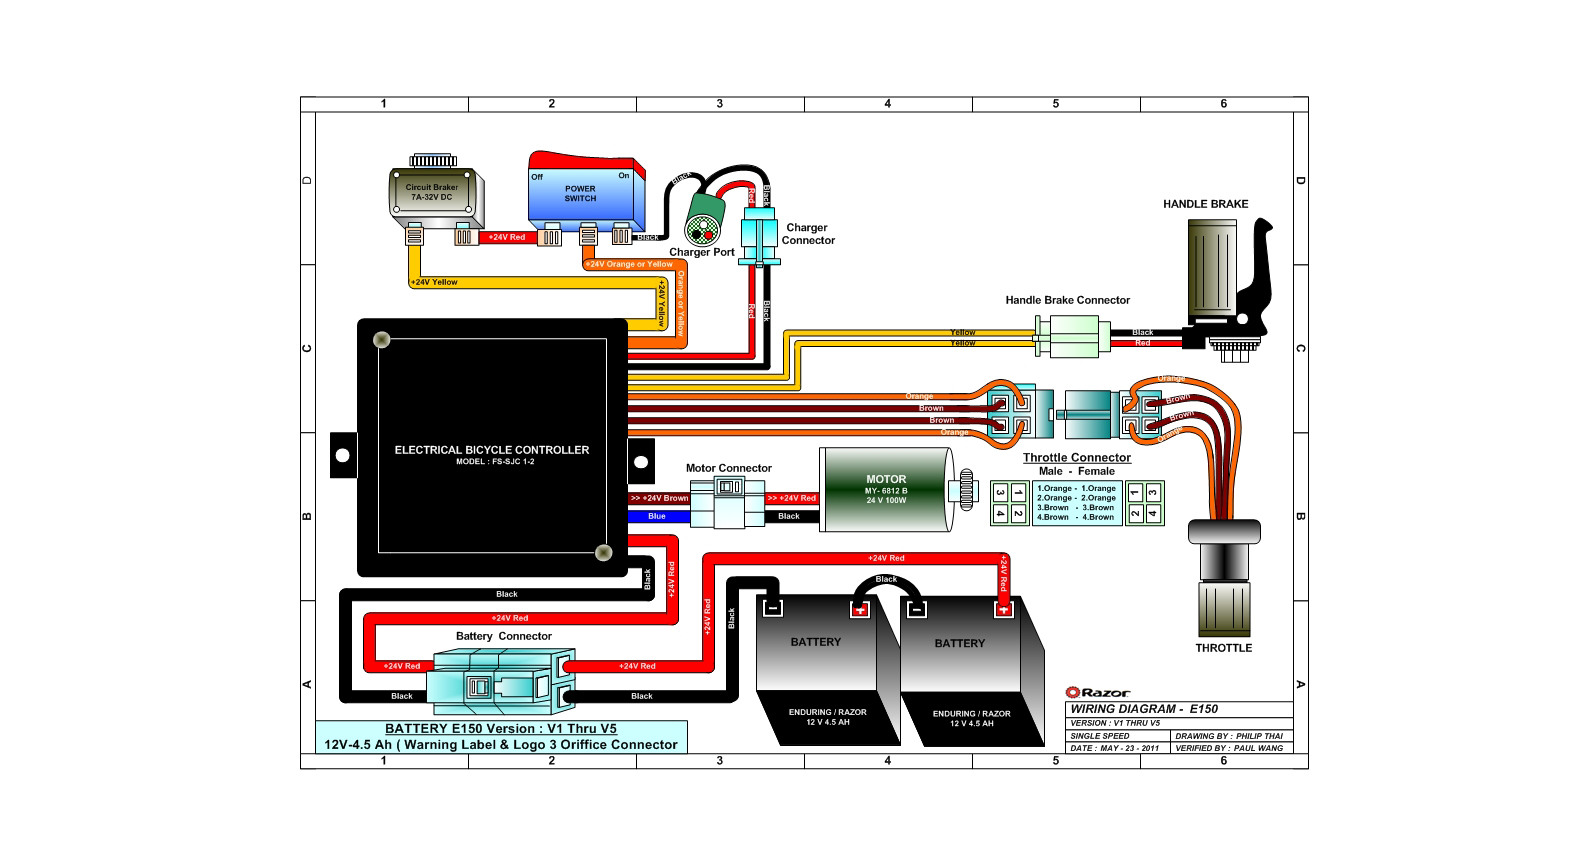 E300 Wiring Diagram